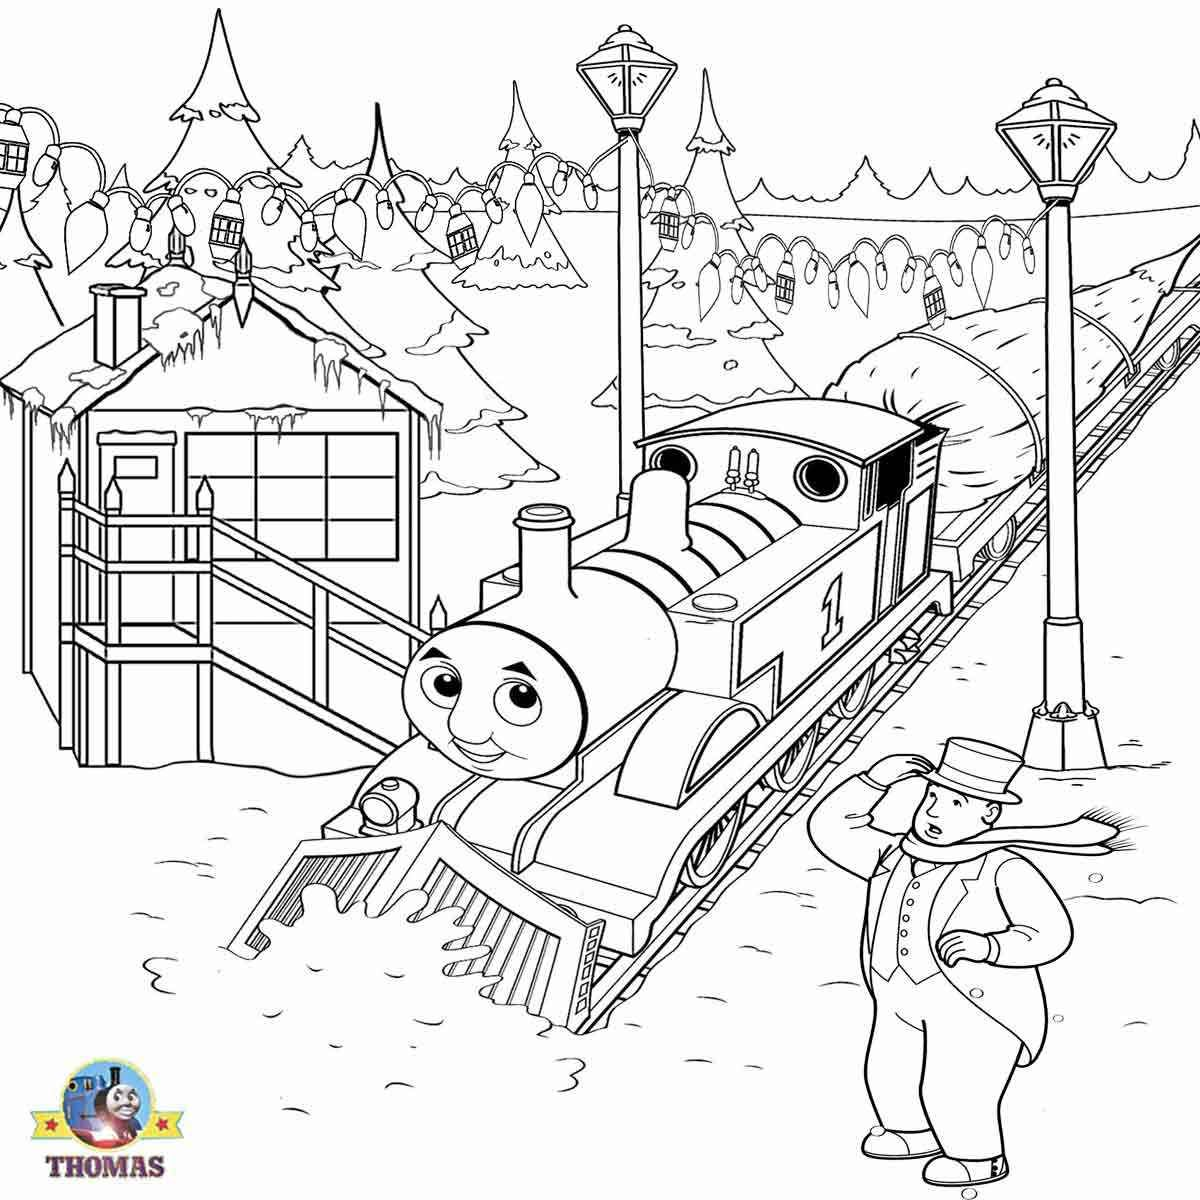 Train boxcar coloring pages - Explore Thomas The Train Coloring Pages And More